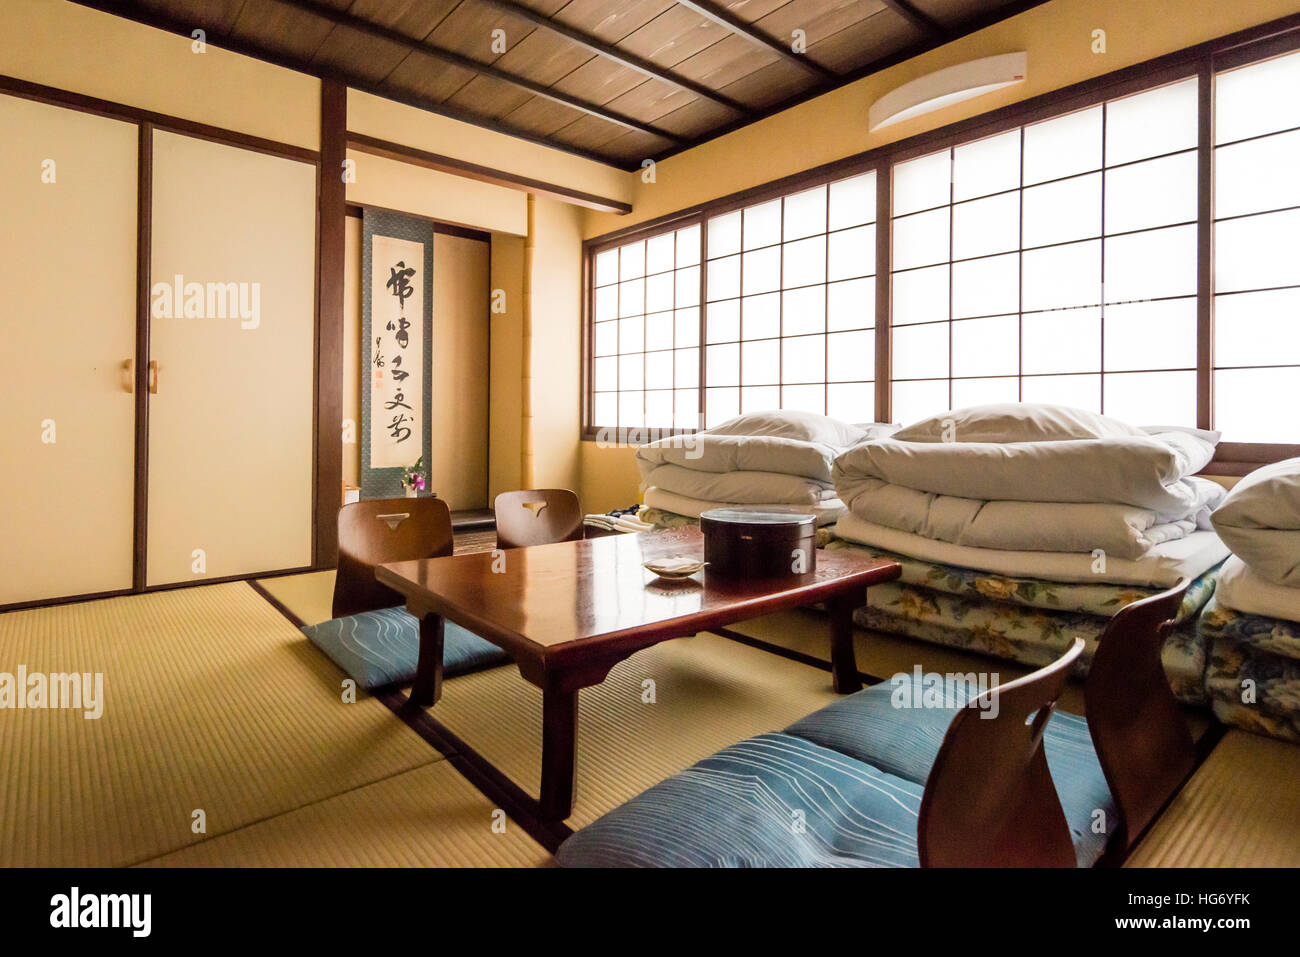 Stupendous Interior Of A Typical Budget Traditional Japanese Style Room Download Free Architecture Designs Xaembritishbridgeorg